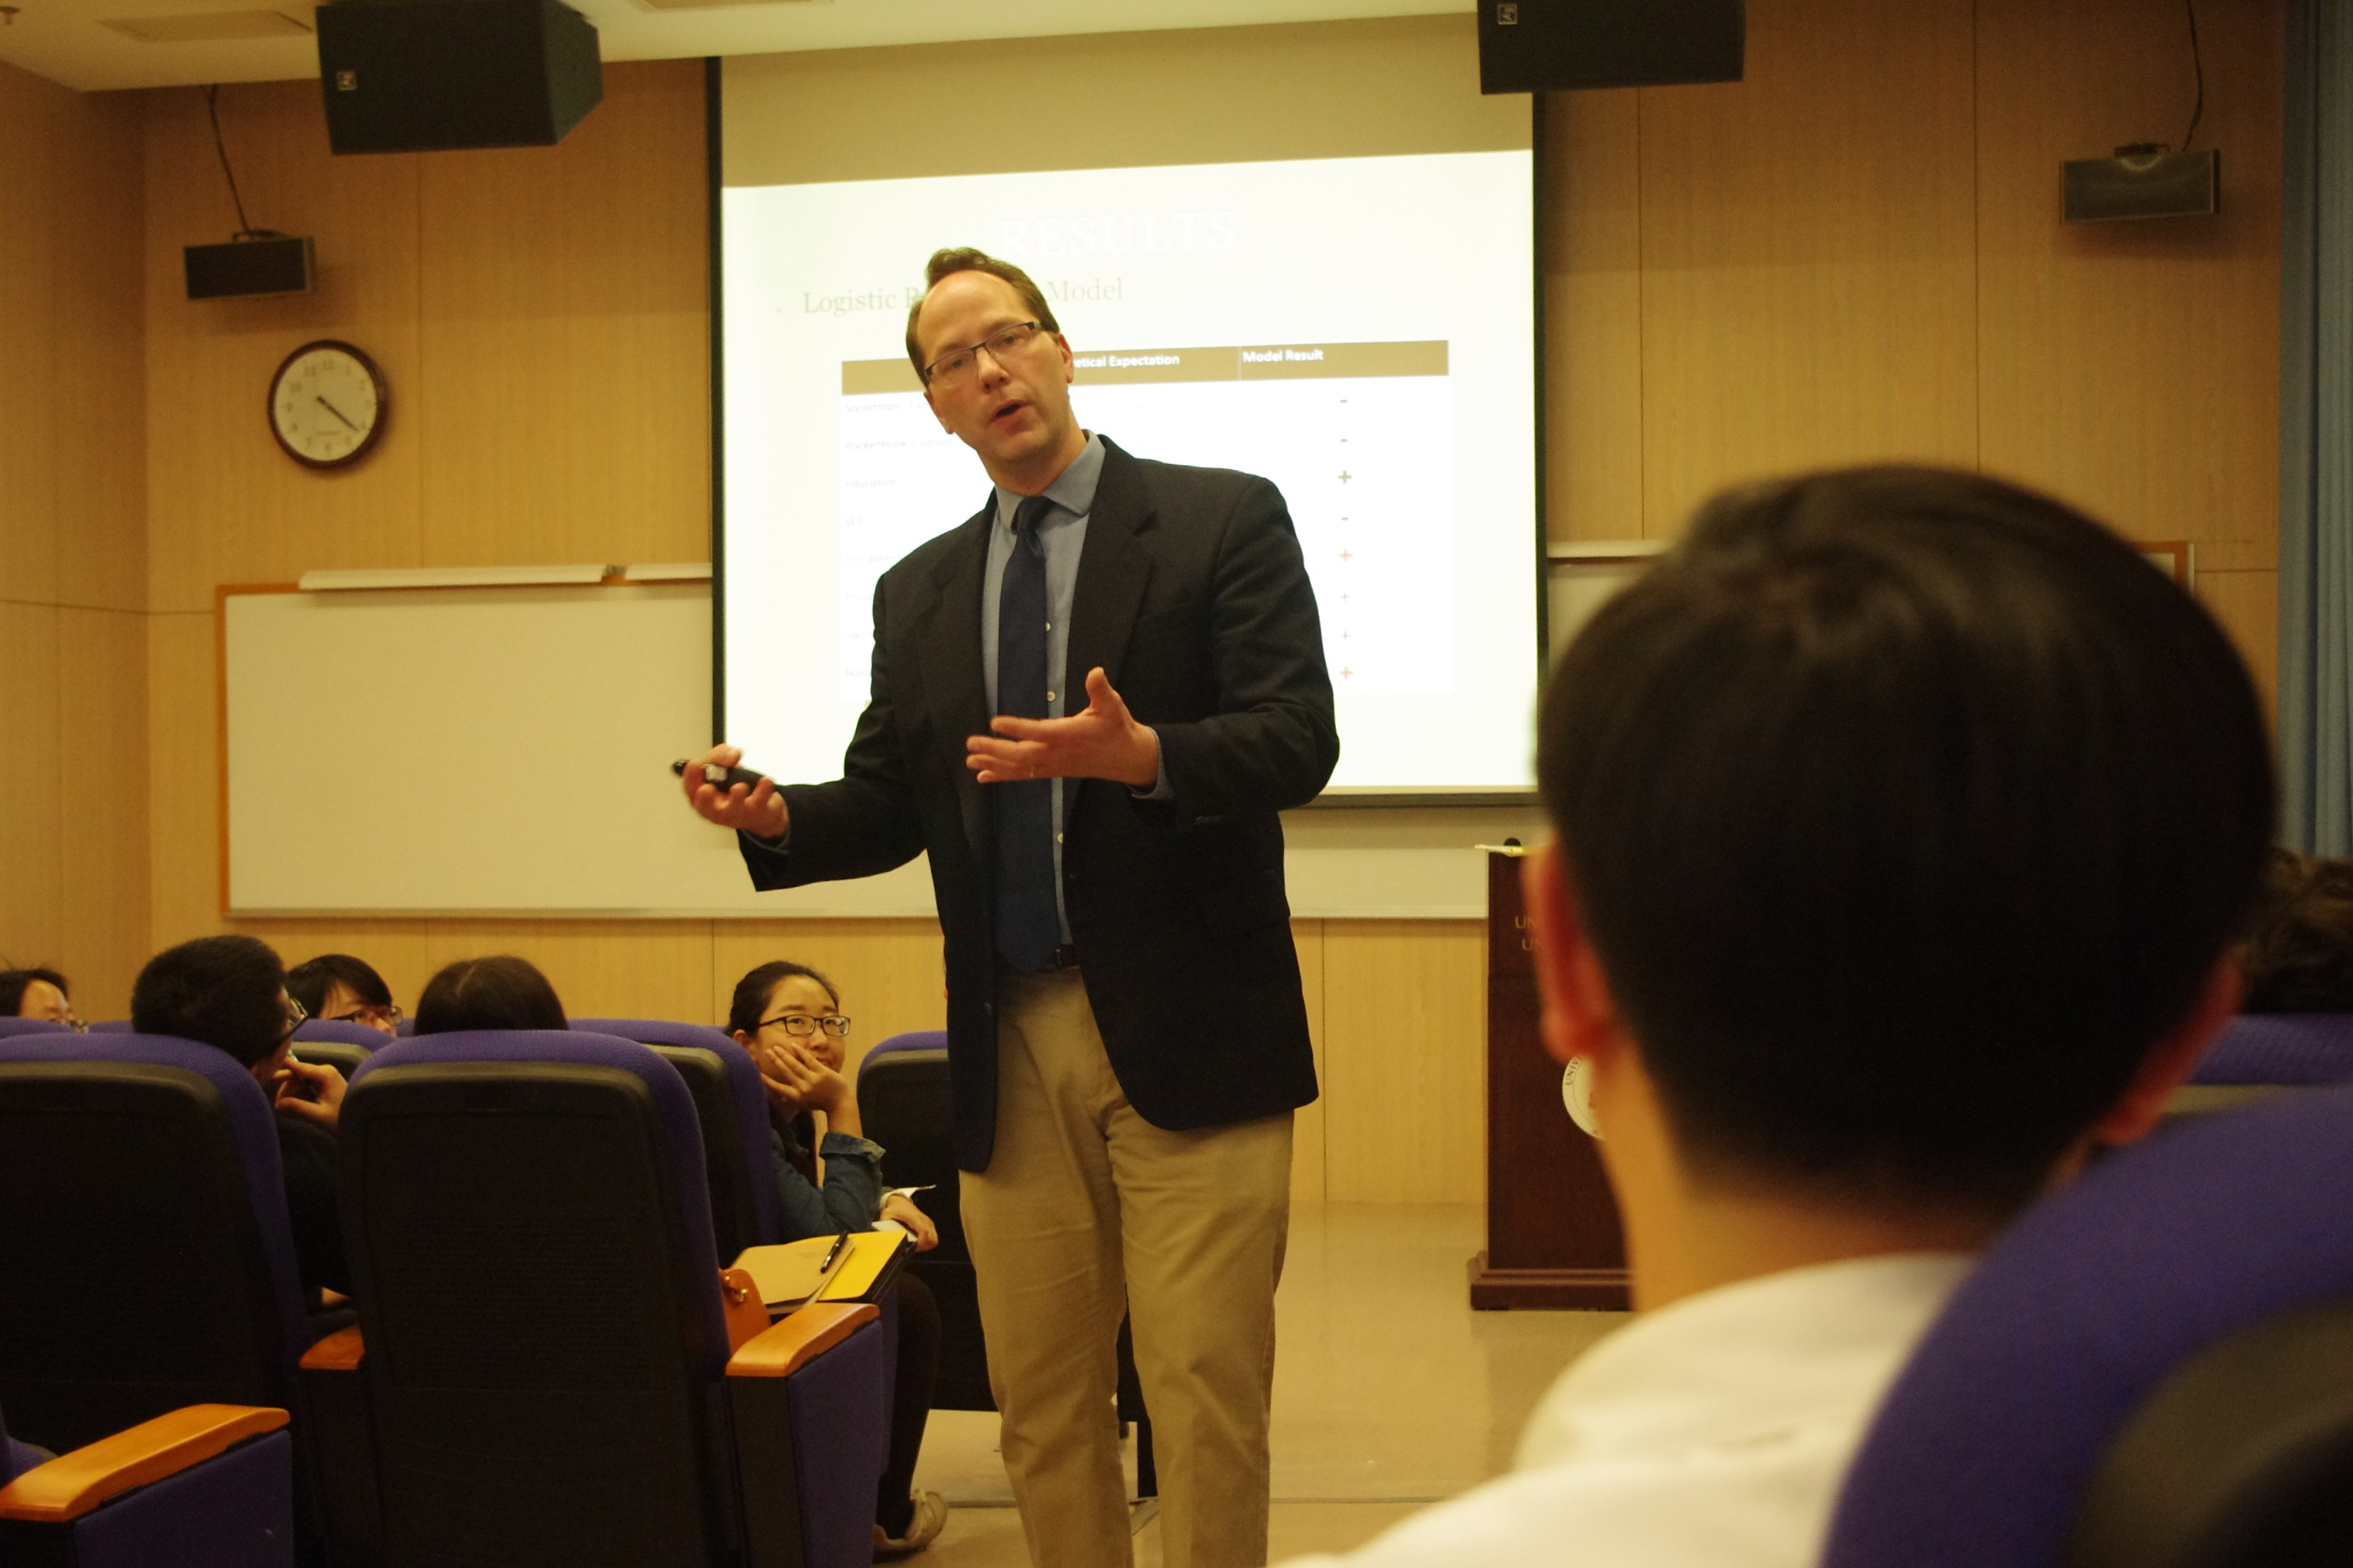 Prof Gregg B Johnson gives a talk at UM on China's relations with Latin America